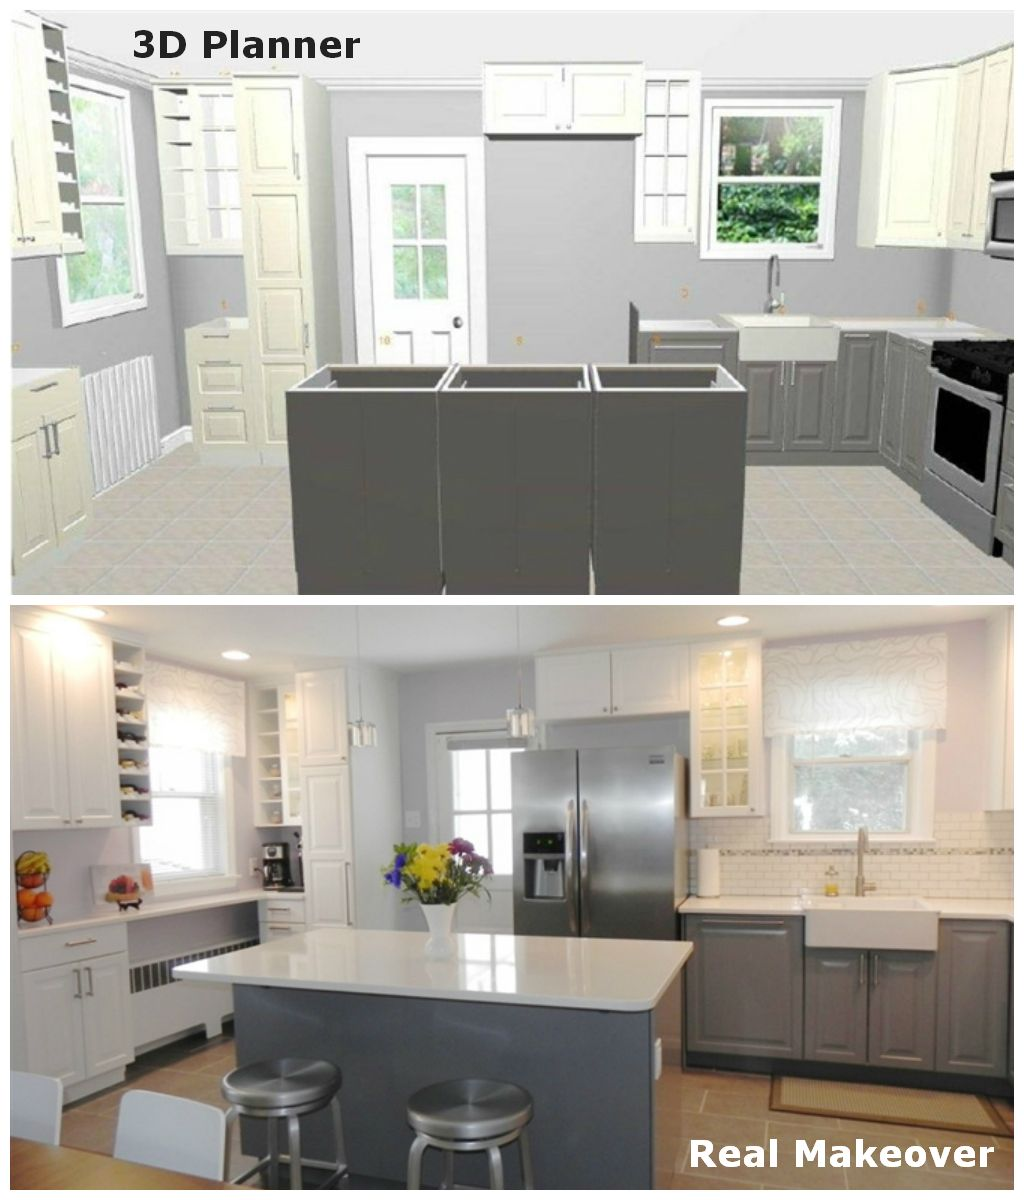 My real dream kitchen before after pinterest for Www ikea usa com cuisineplanner